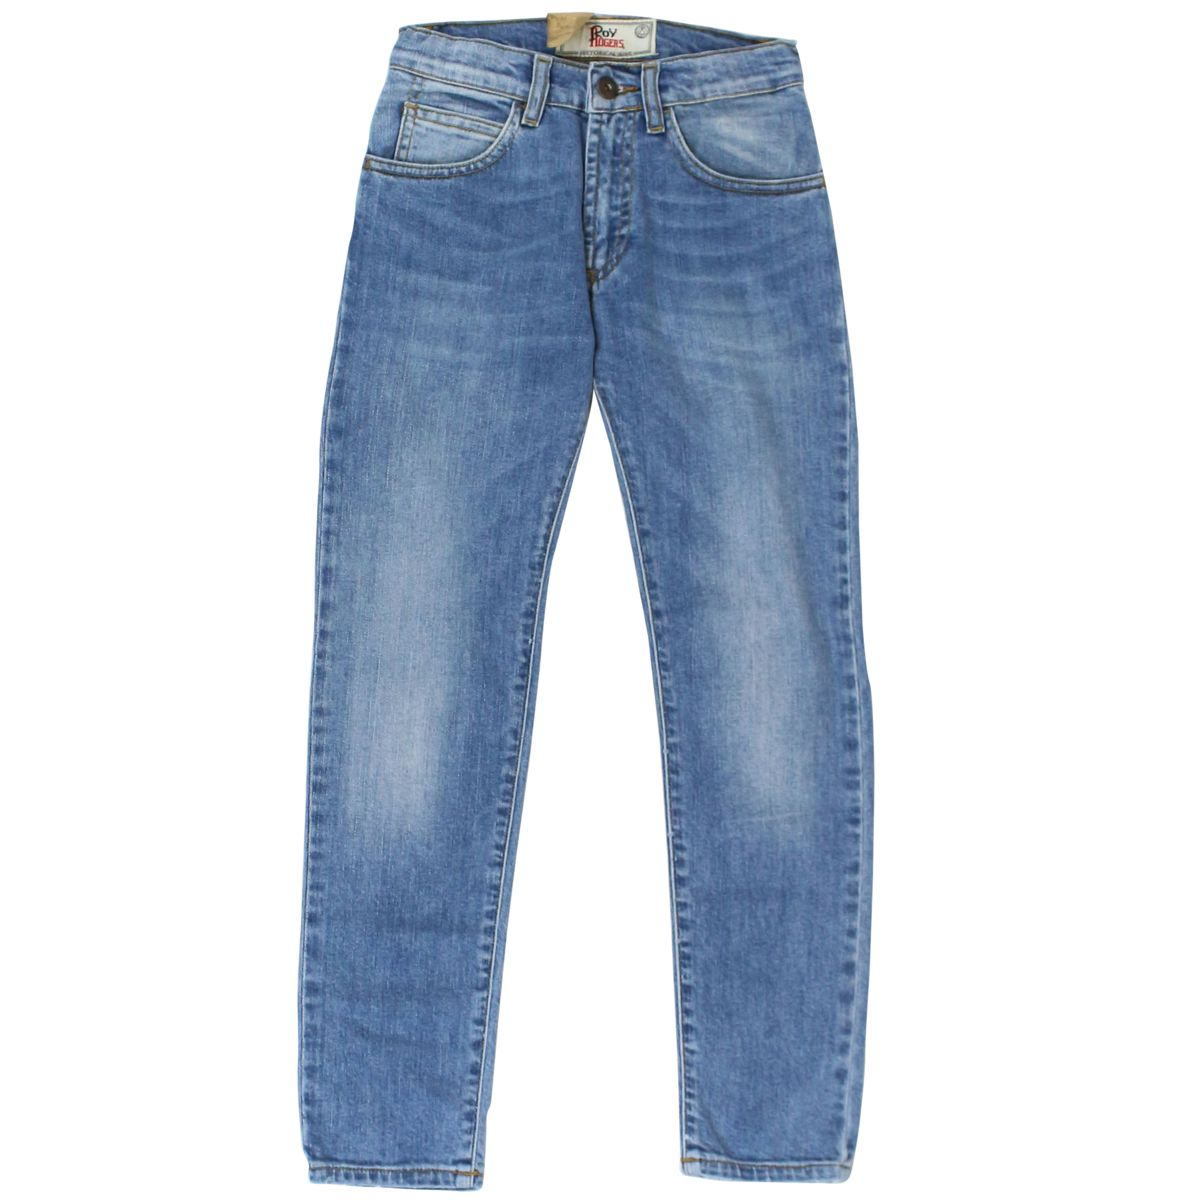 Emanuele Zeus jeans Medium denim ROY ROGER'S